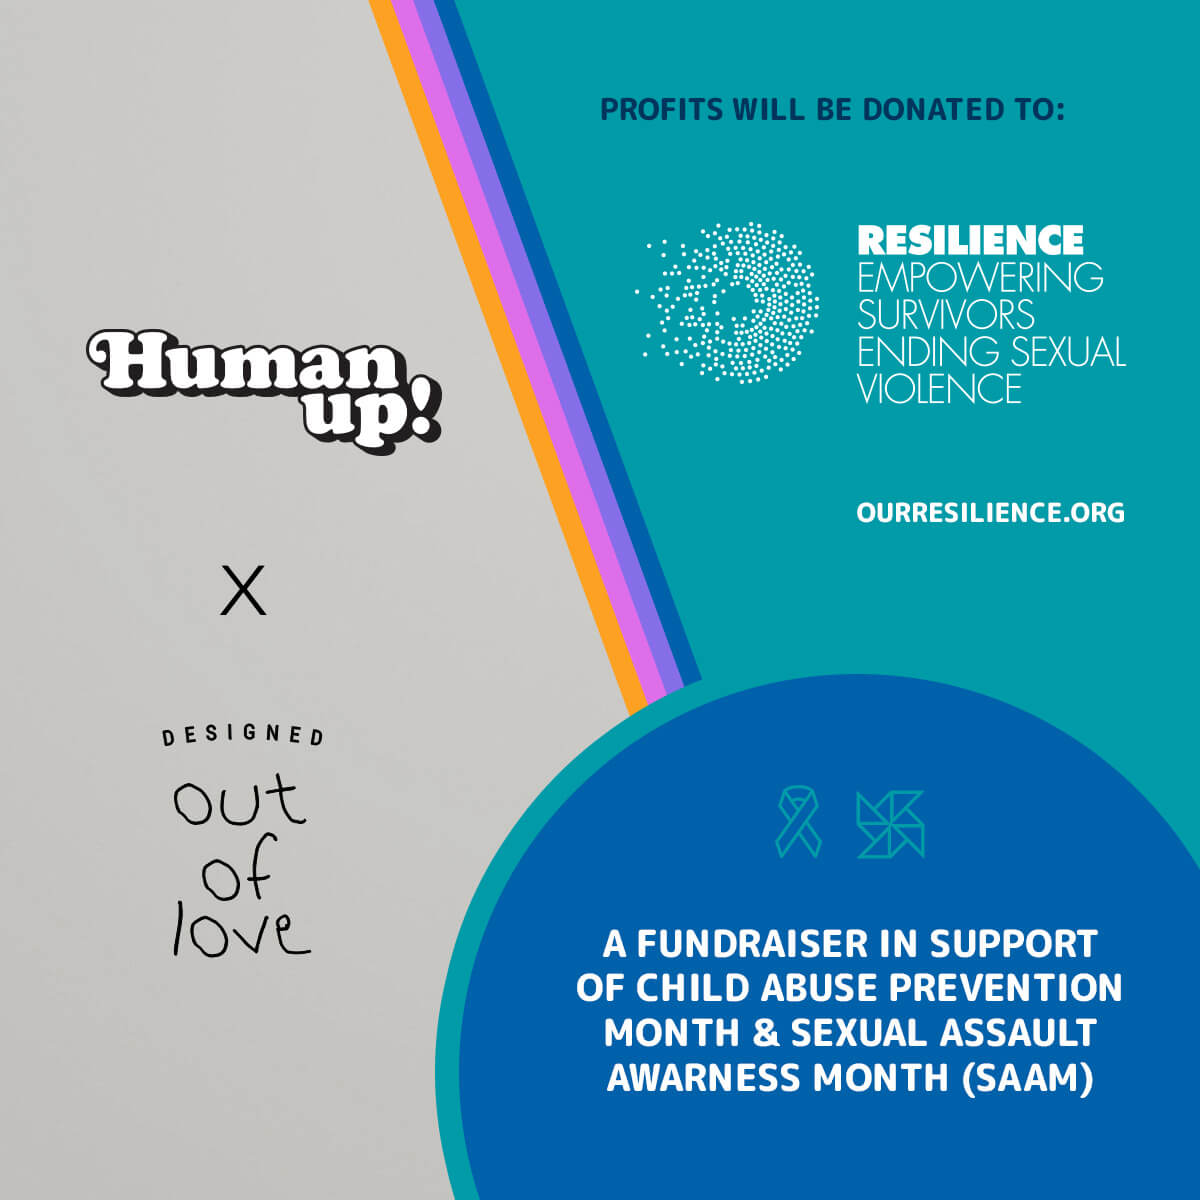 Human Up and Designed Out Of Love collaboration. Profits will be donated to Resilience: Empowering Survivors Ending Sexual Violence. A fundraiser in support of child abuse prevention month and sexual assault awareness month (SAAM).